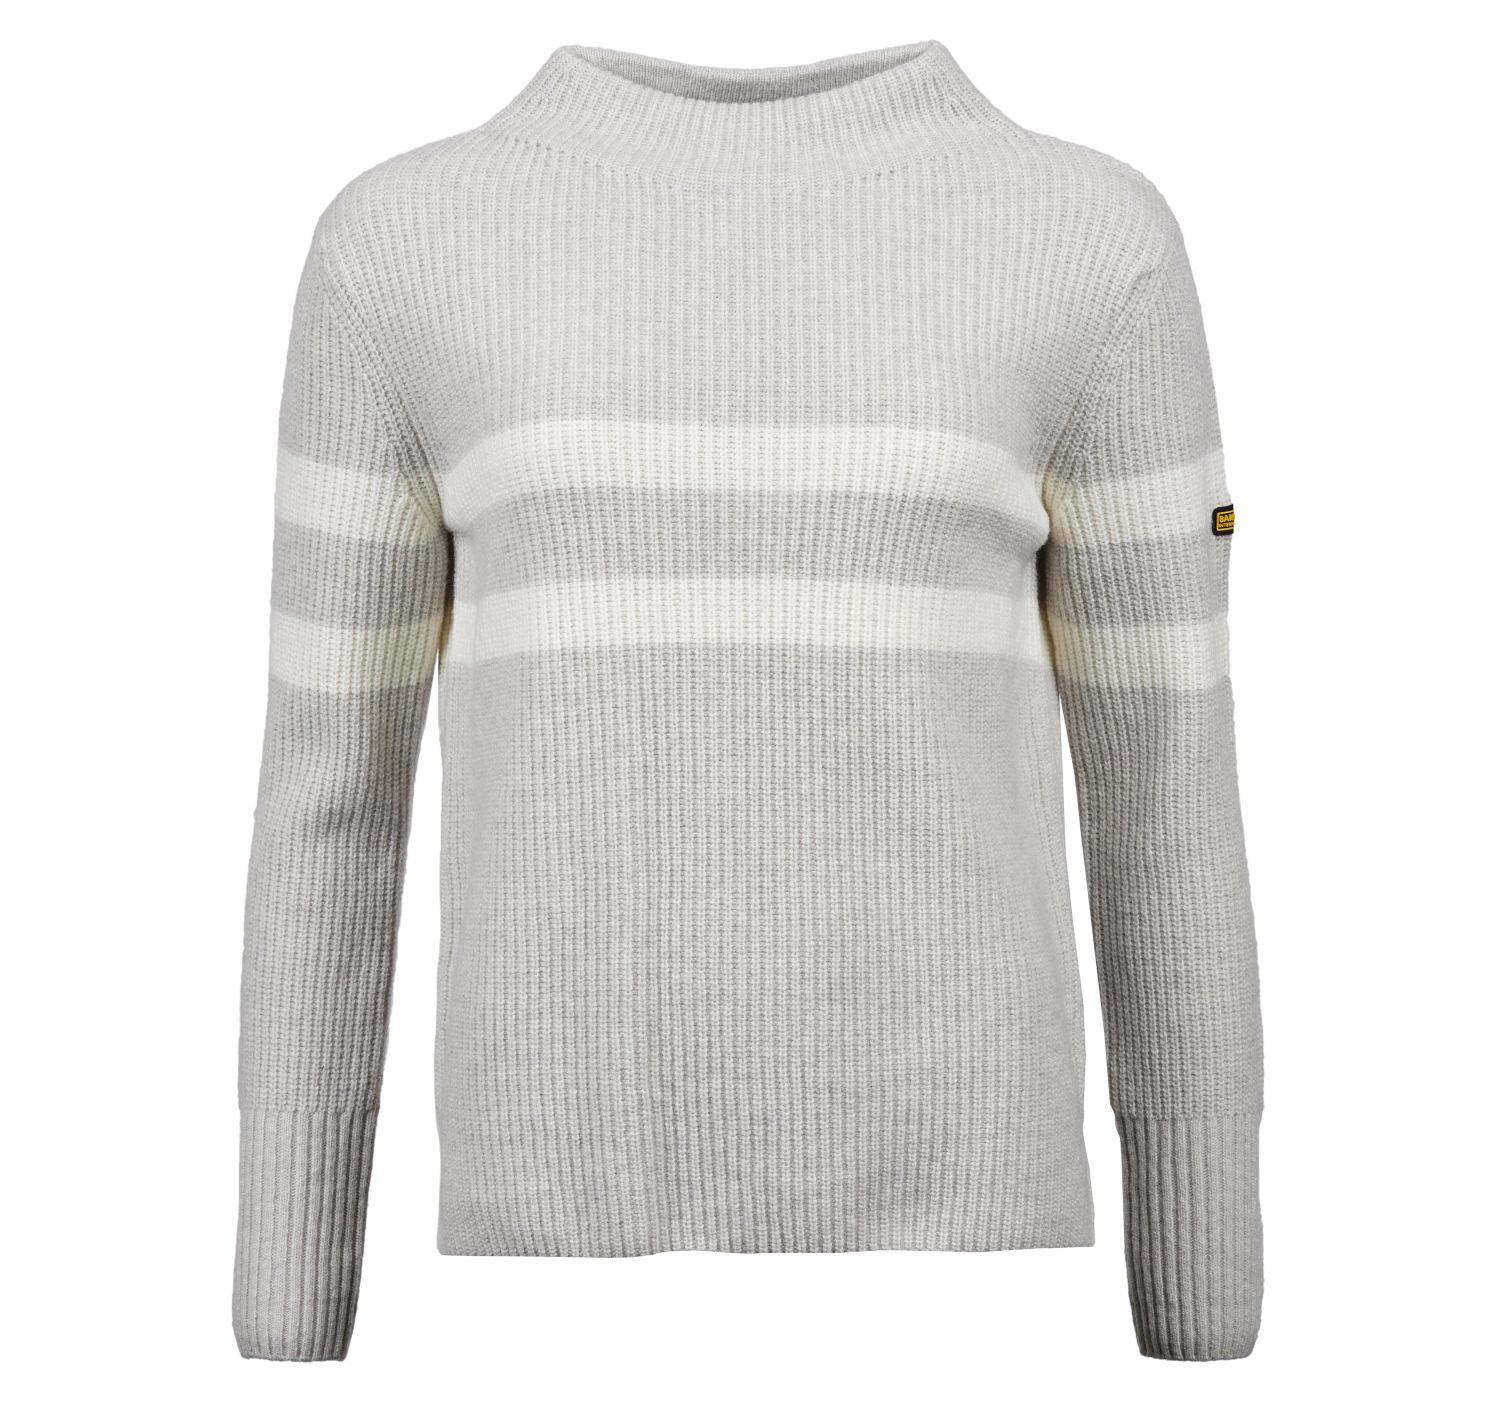 Barbour Barbour Intl Quayle Sweater Barbour International: Relaxed Fit